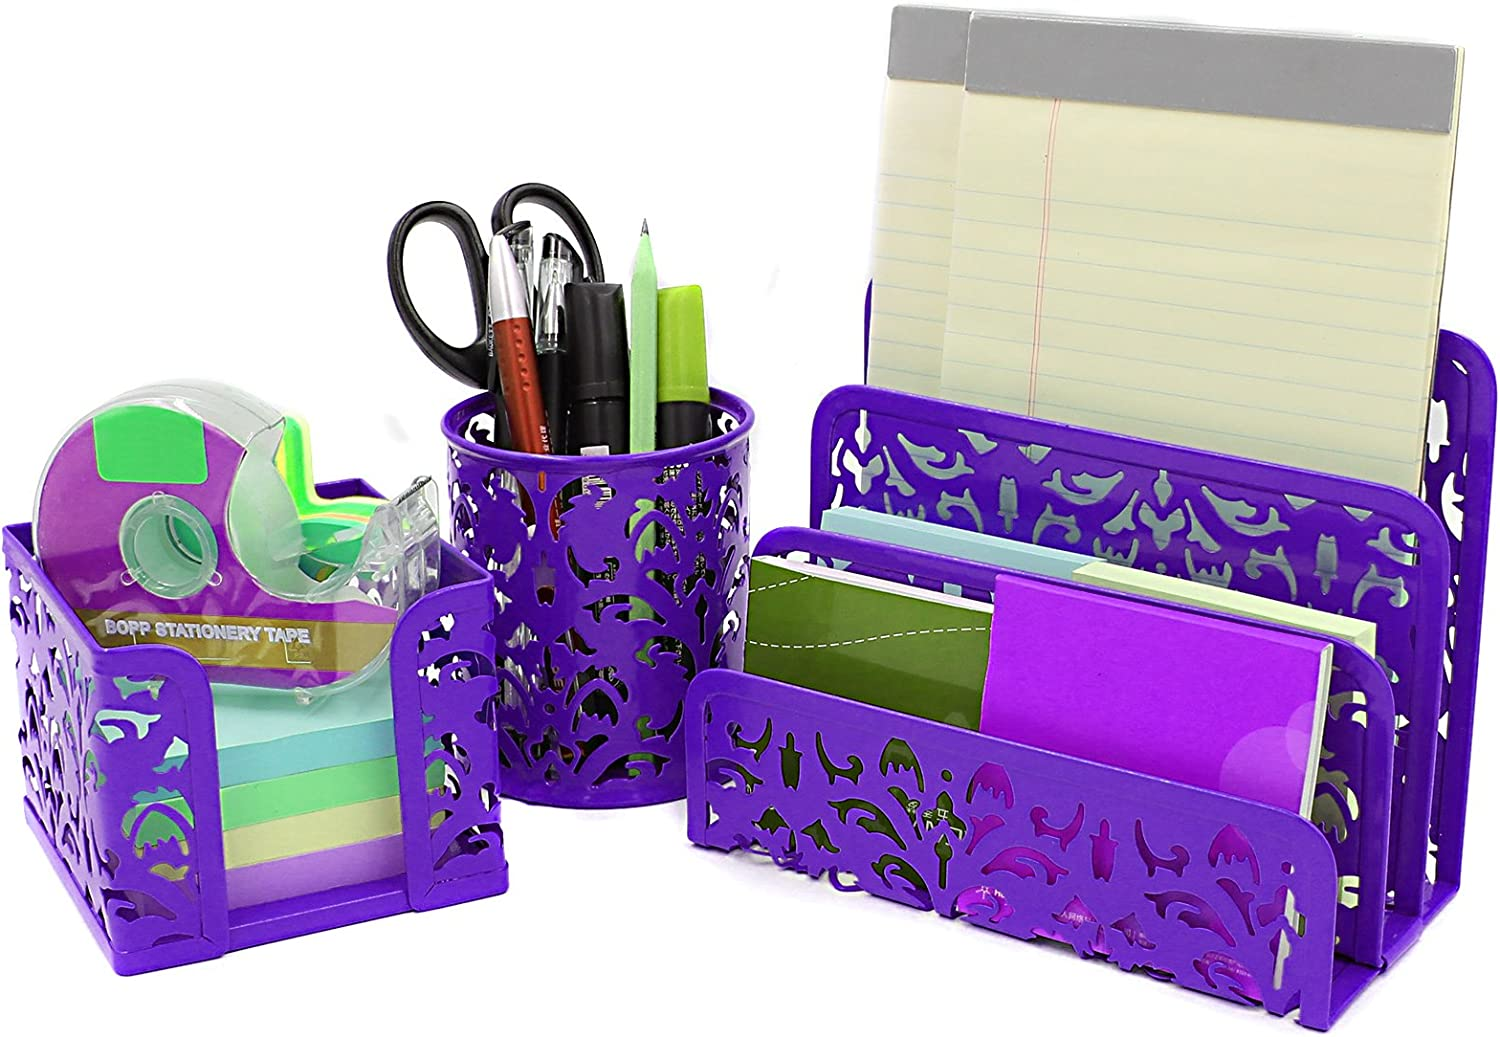 EasyPAG Carved Hollow Flower Pattern 3 in 1 Desk Organizer Set - Letter Sorter, Pencil Holder and Stick Note Holder,Purple